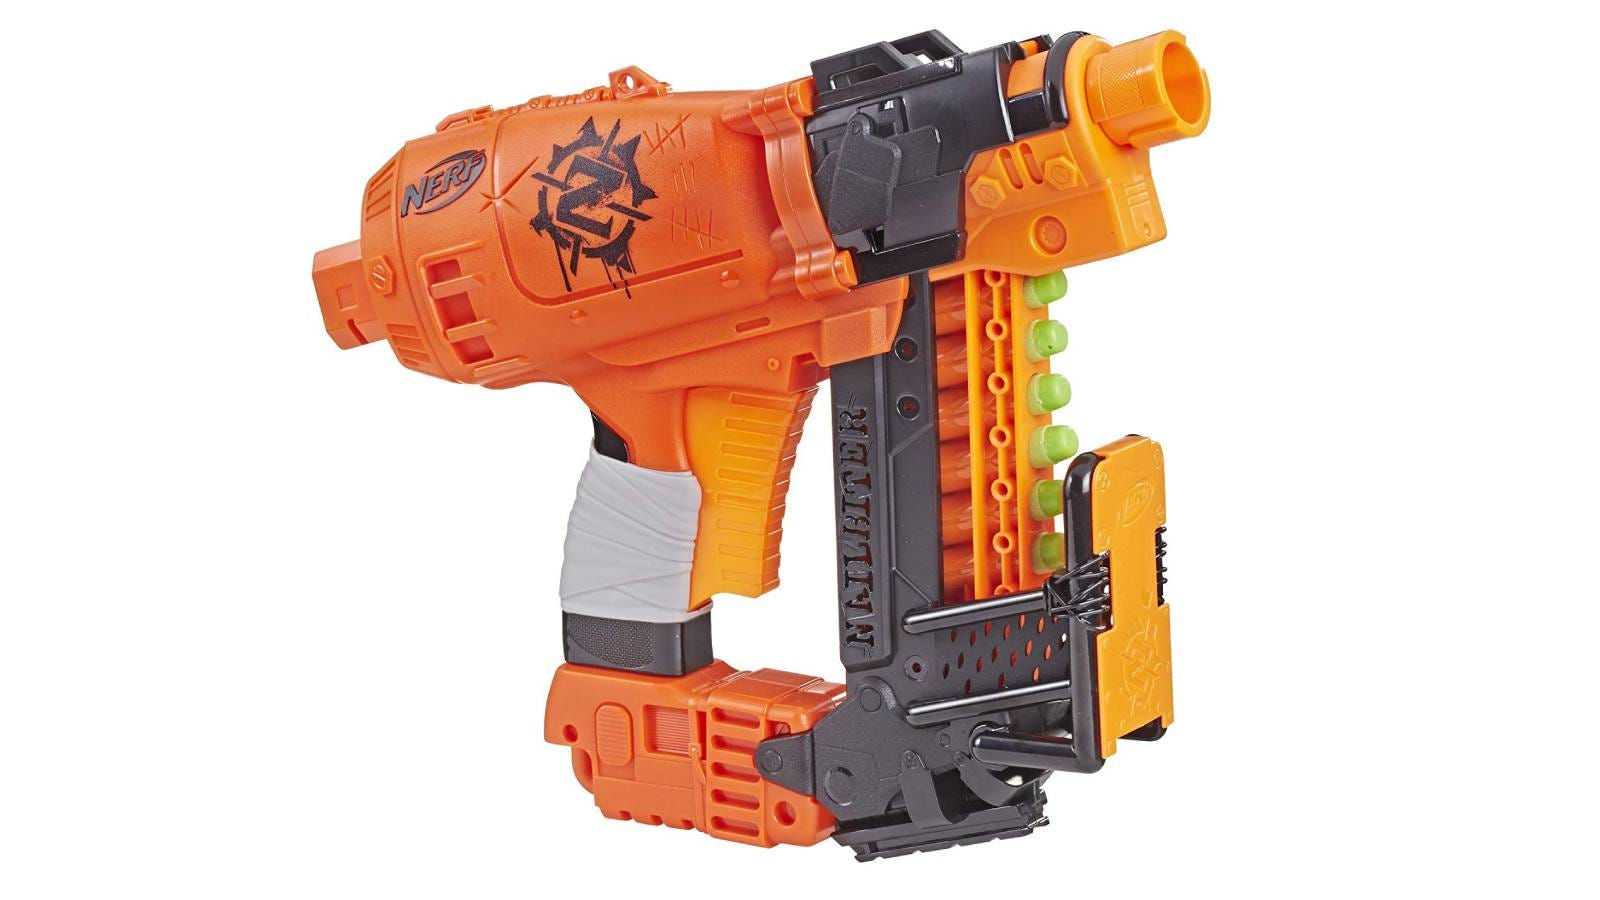 The NERF Nailbiter Zombie Strike toy blaster.